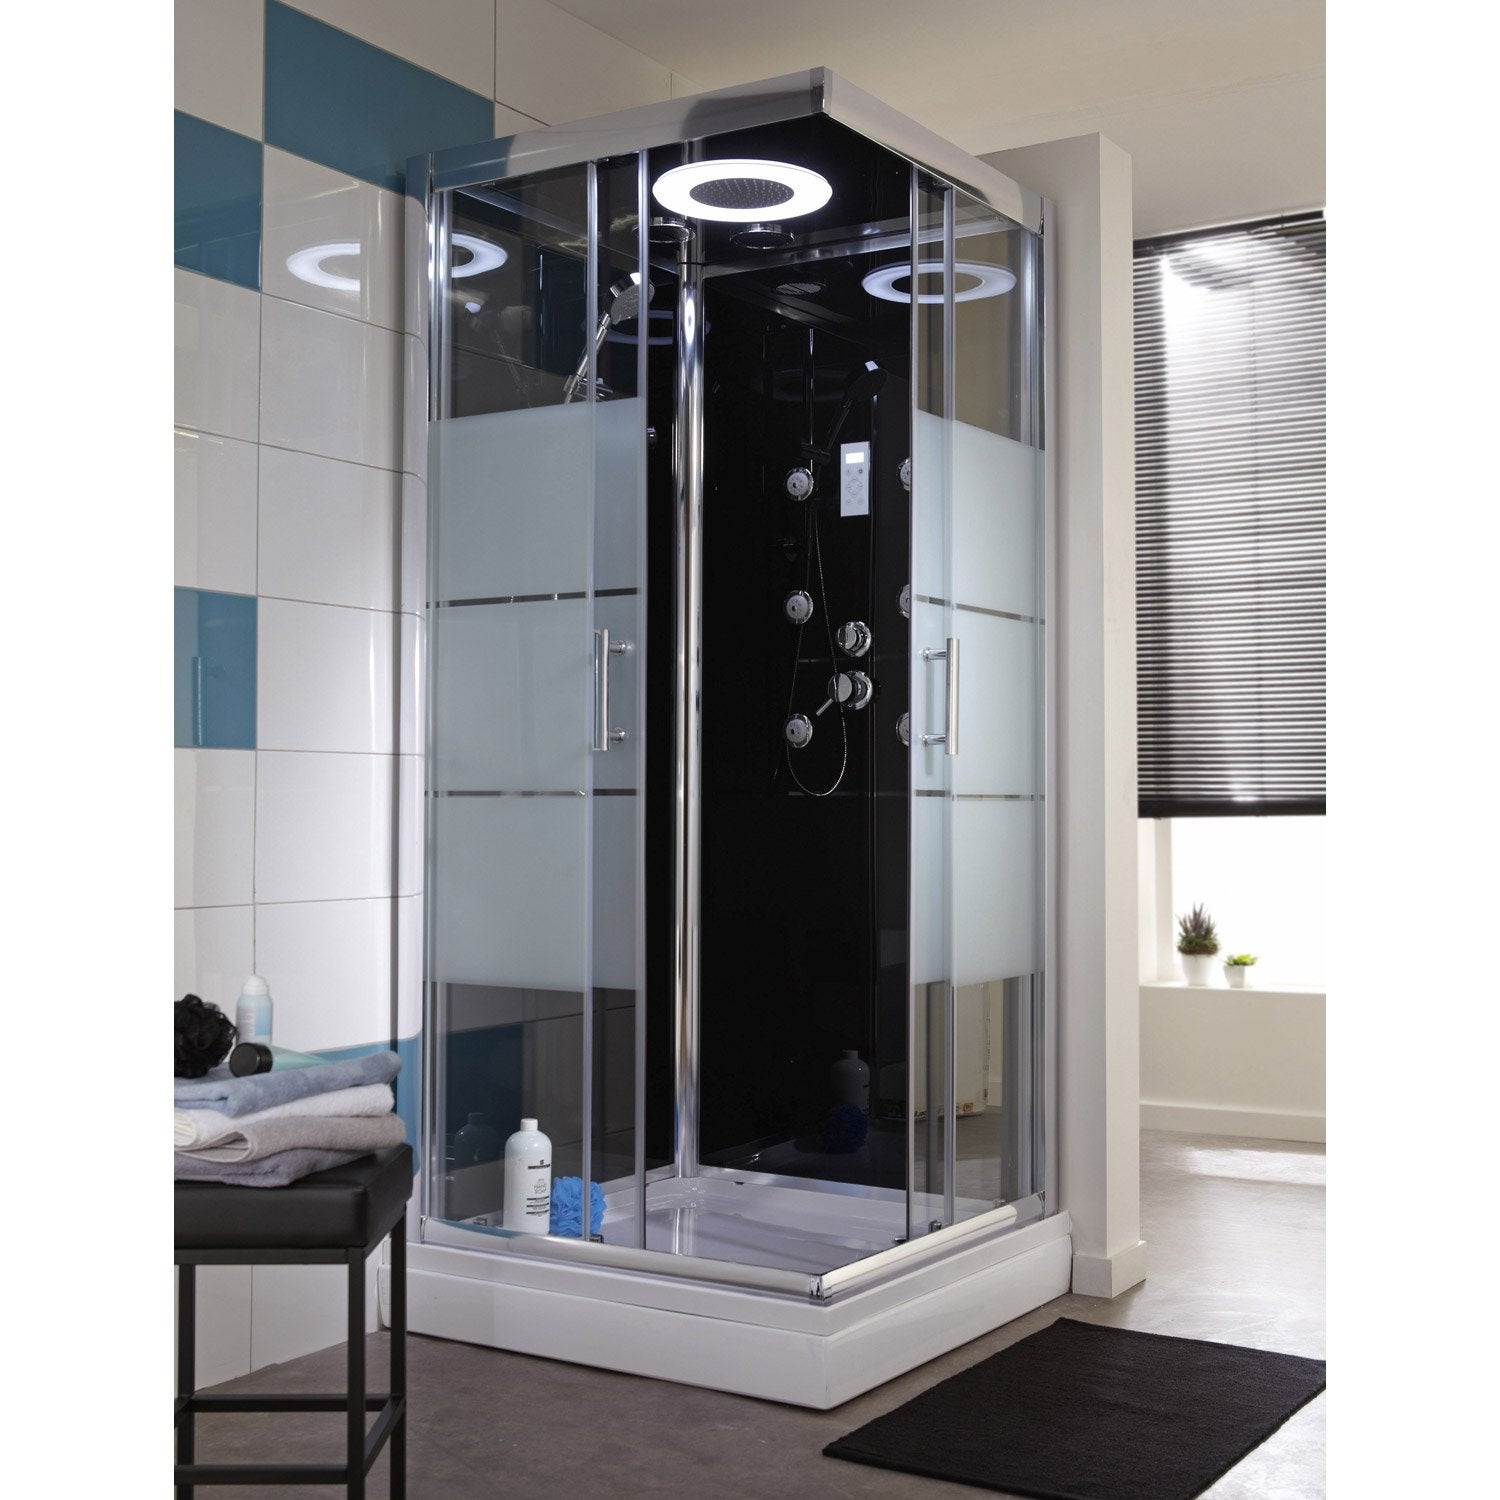 cabine de douche carr 80x80 cm optima2 noire leroy merlin. Black Bedroom Furniture Sets. Home Design Ideas